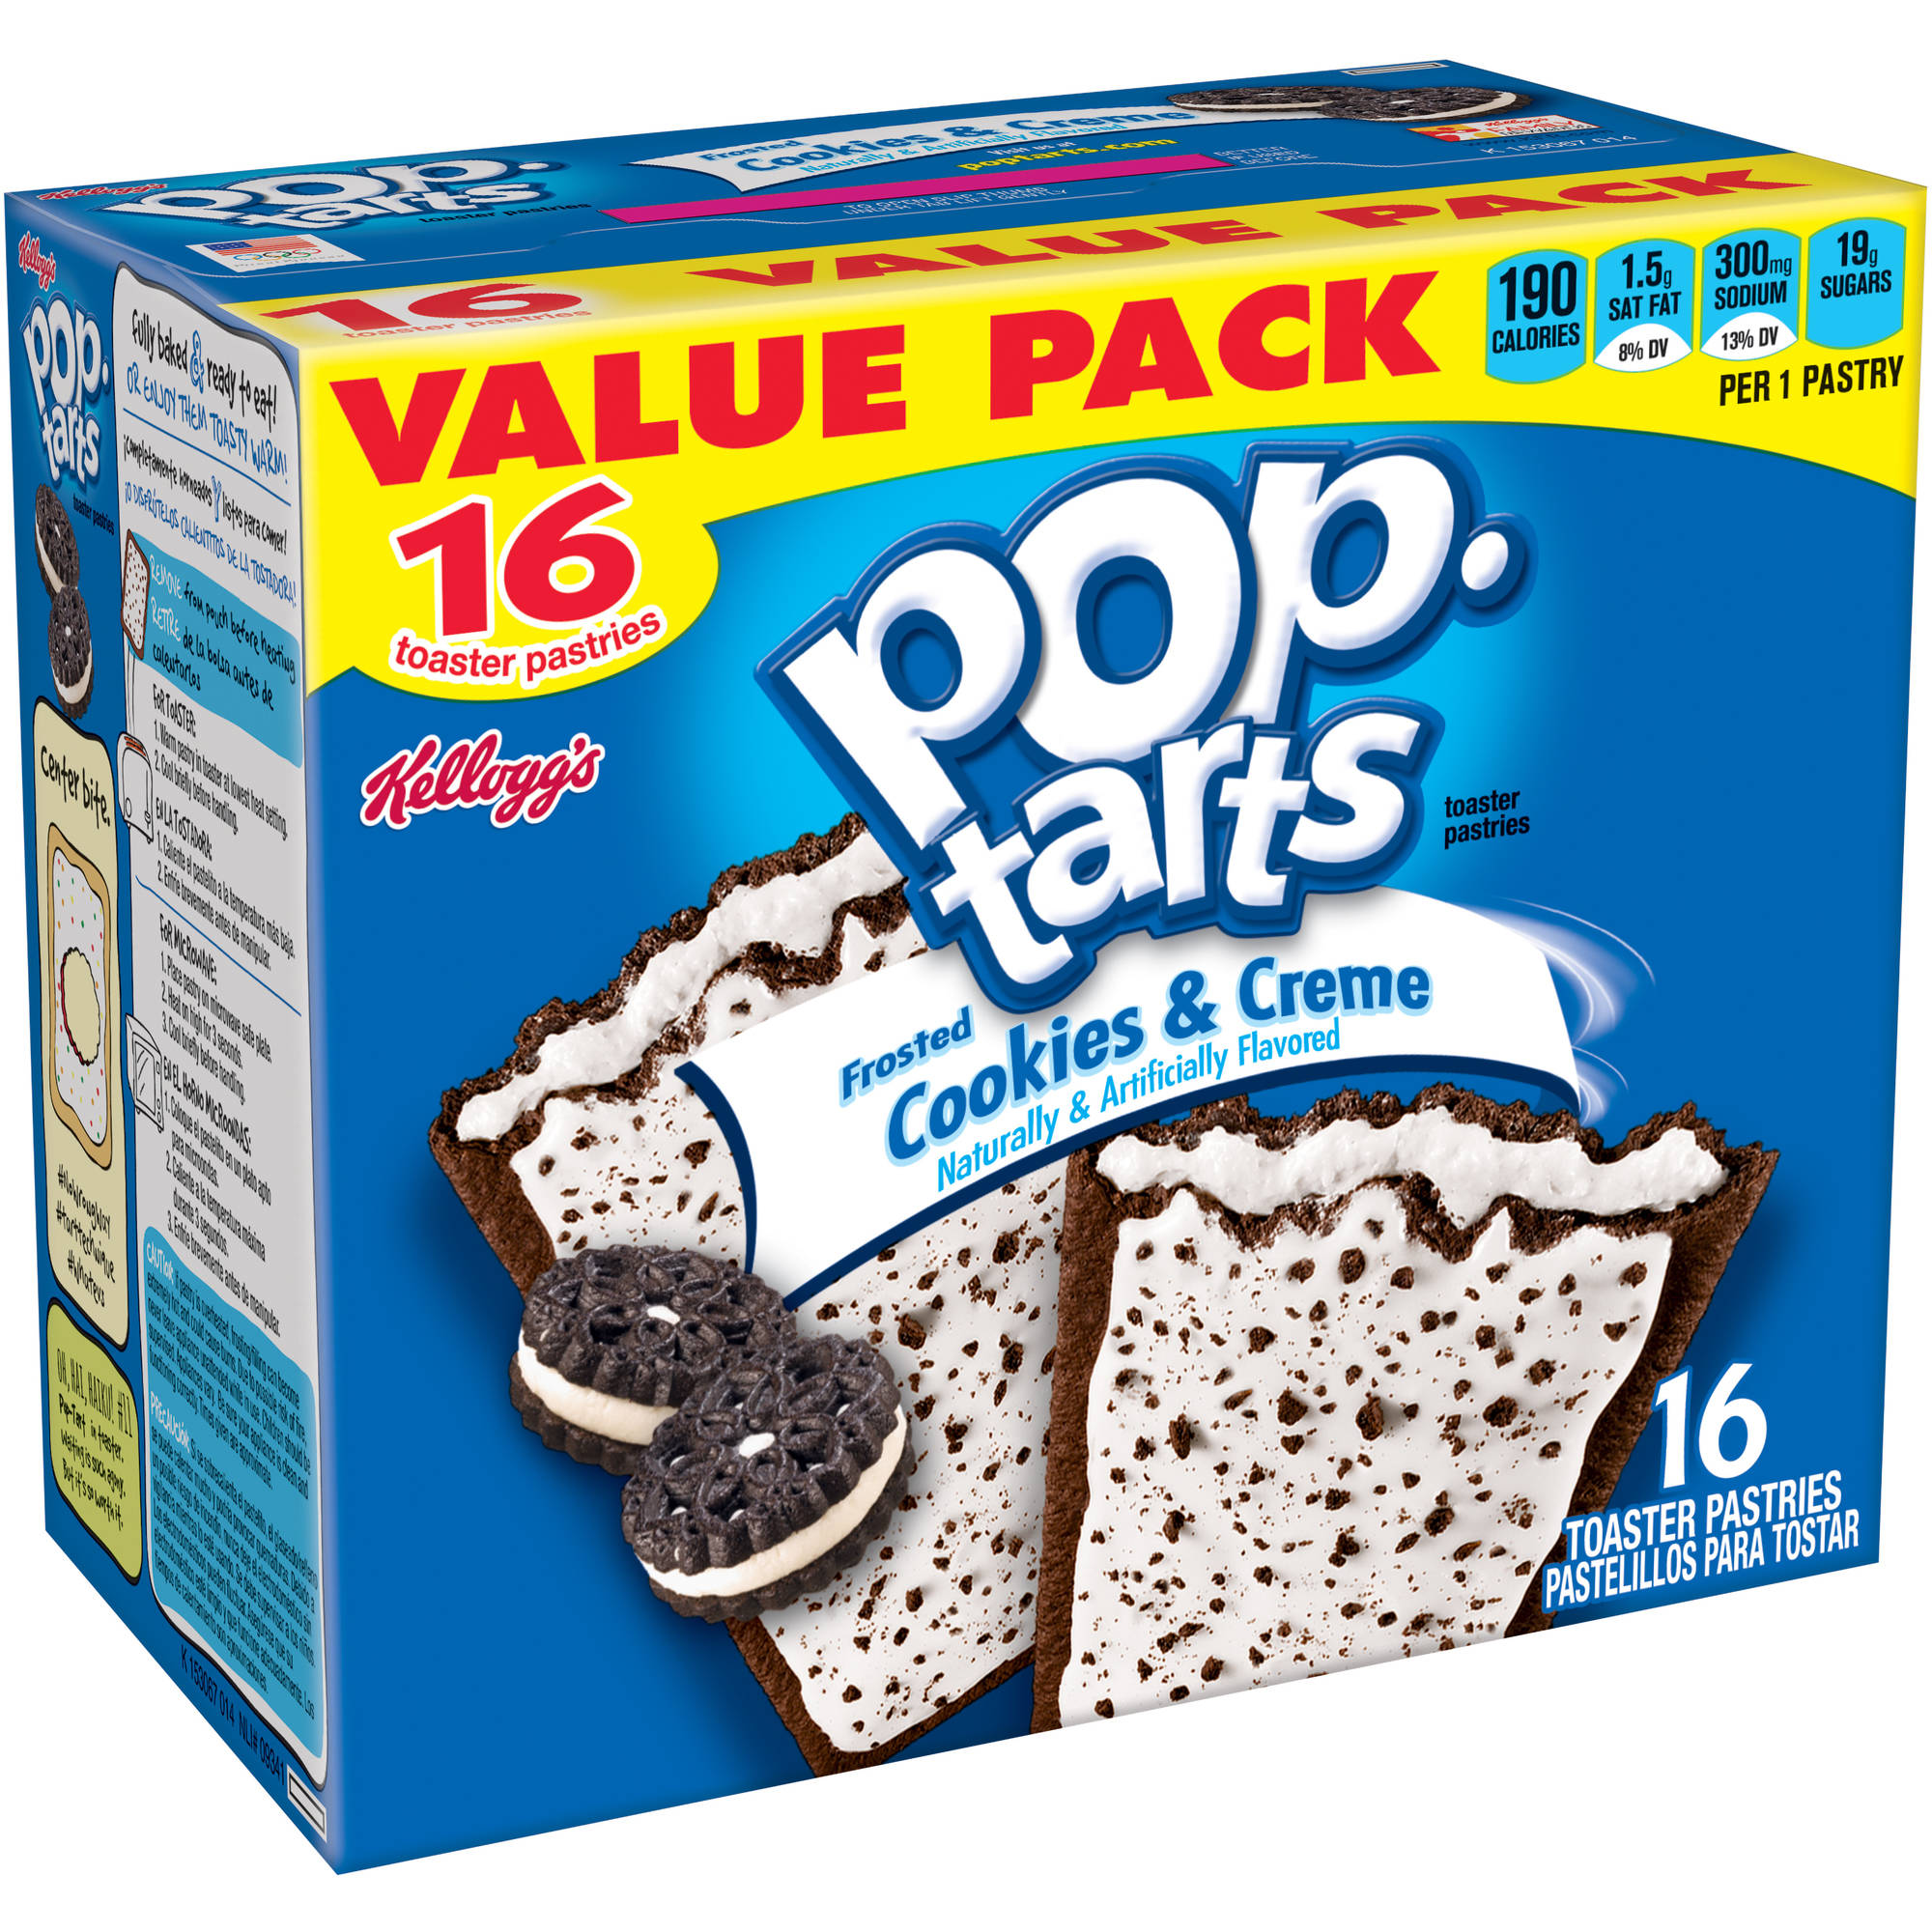 Kellogg's Frosted Cookies & Creme Pop-Tarts, 16 ct